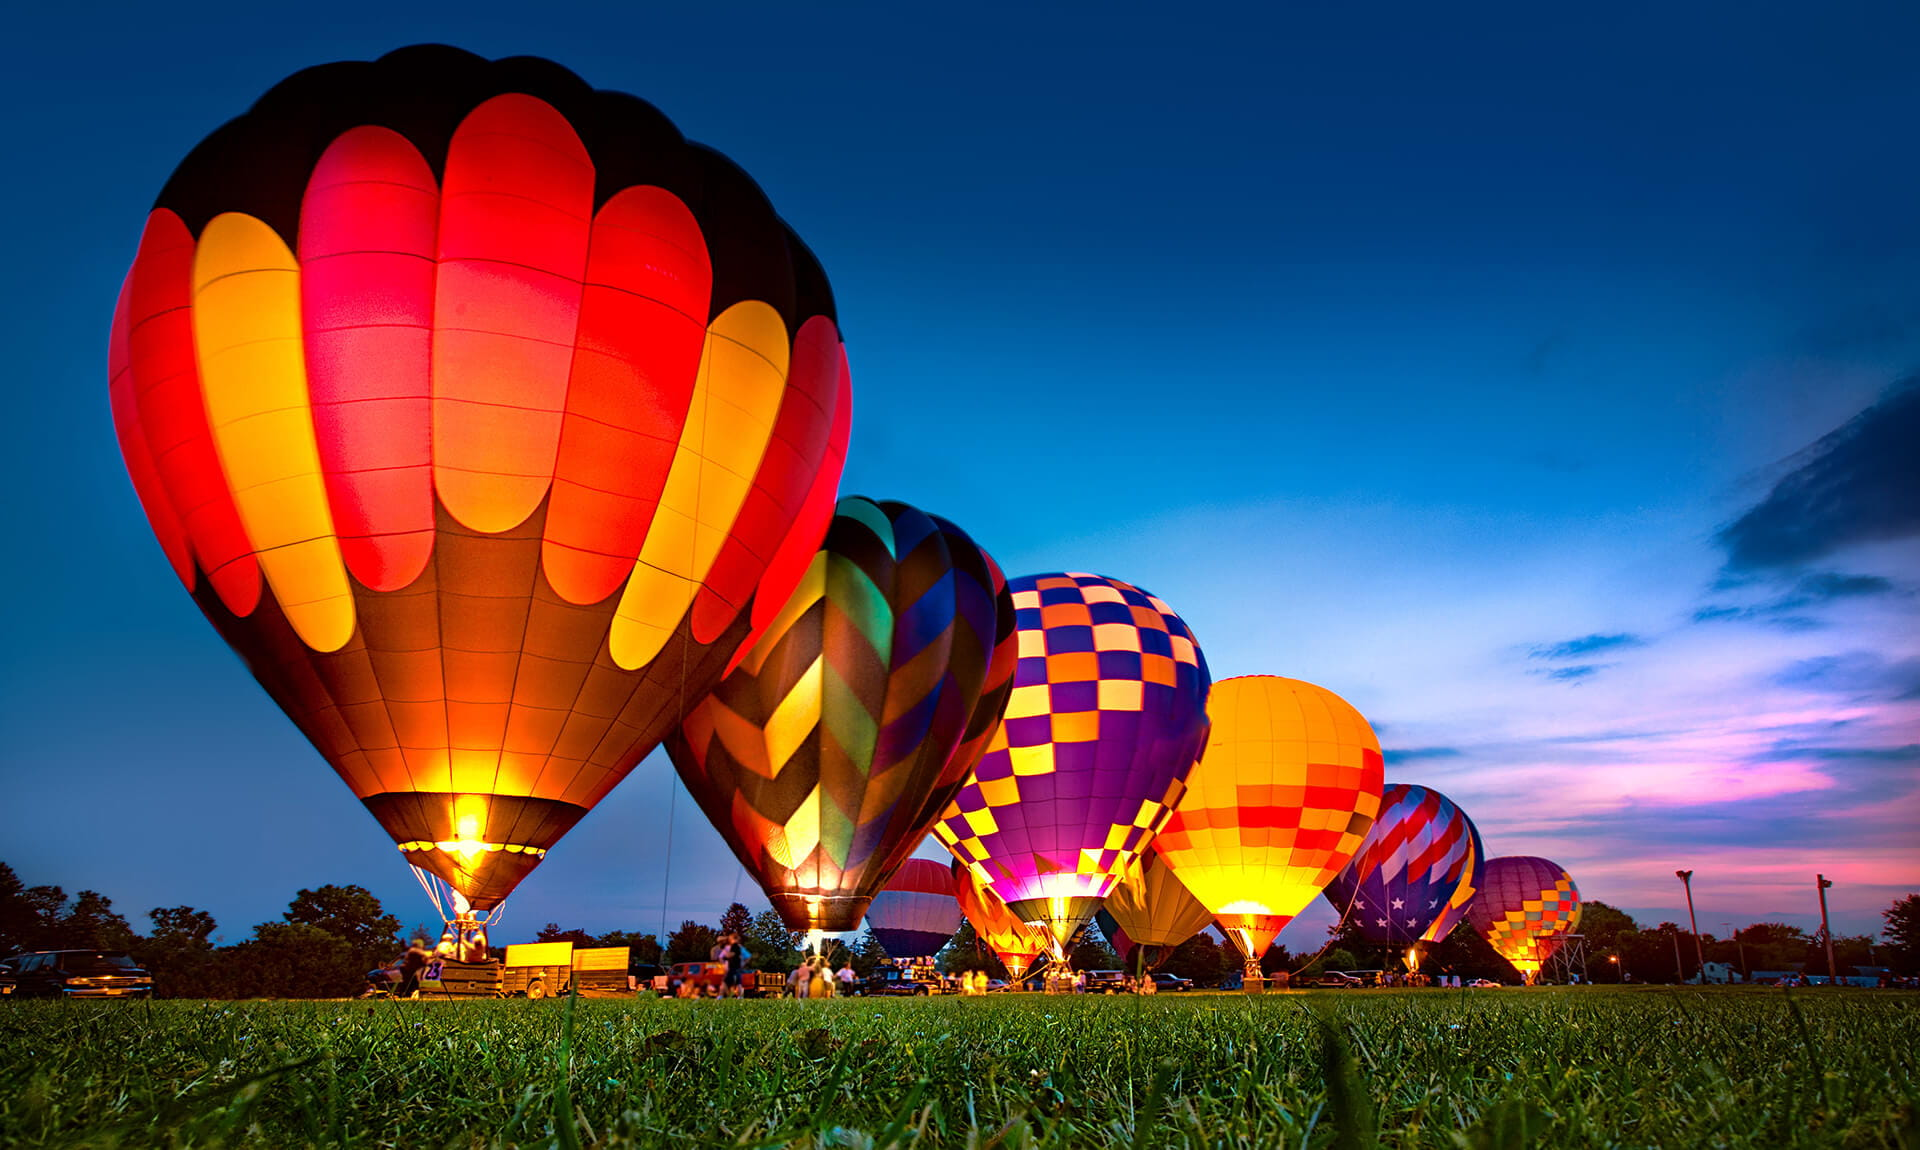 Multi-colored hot air balloons